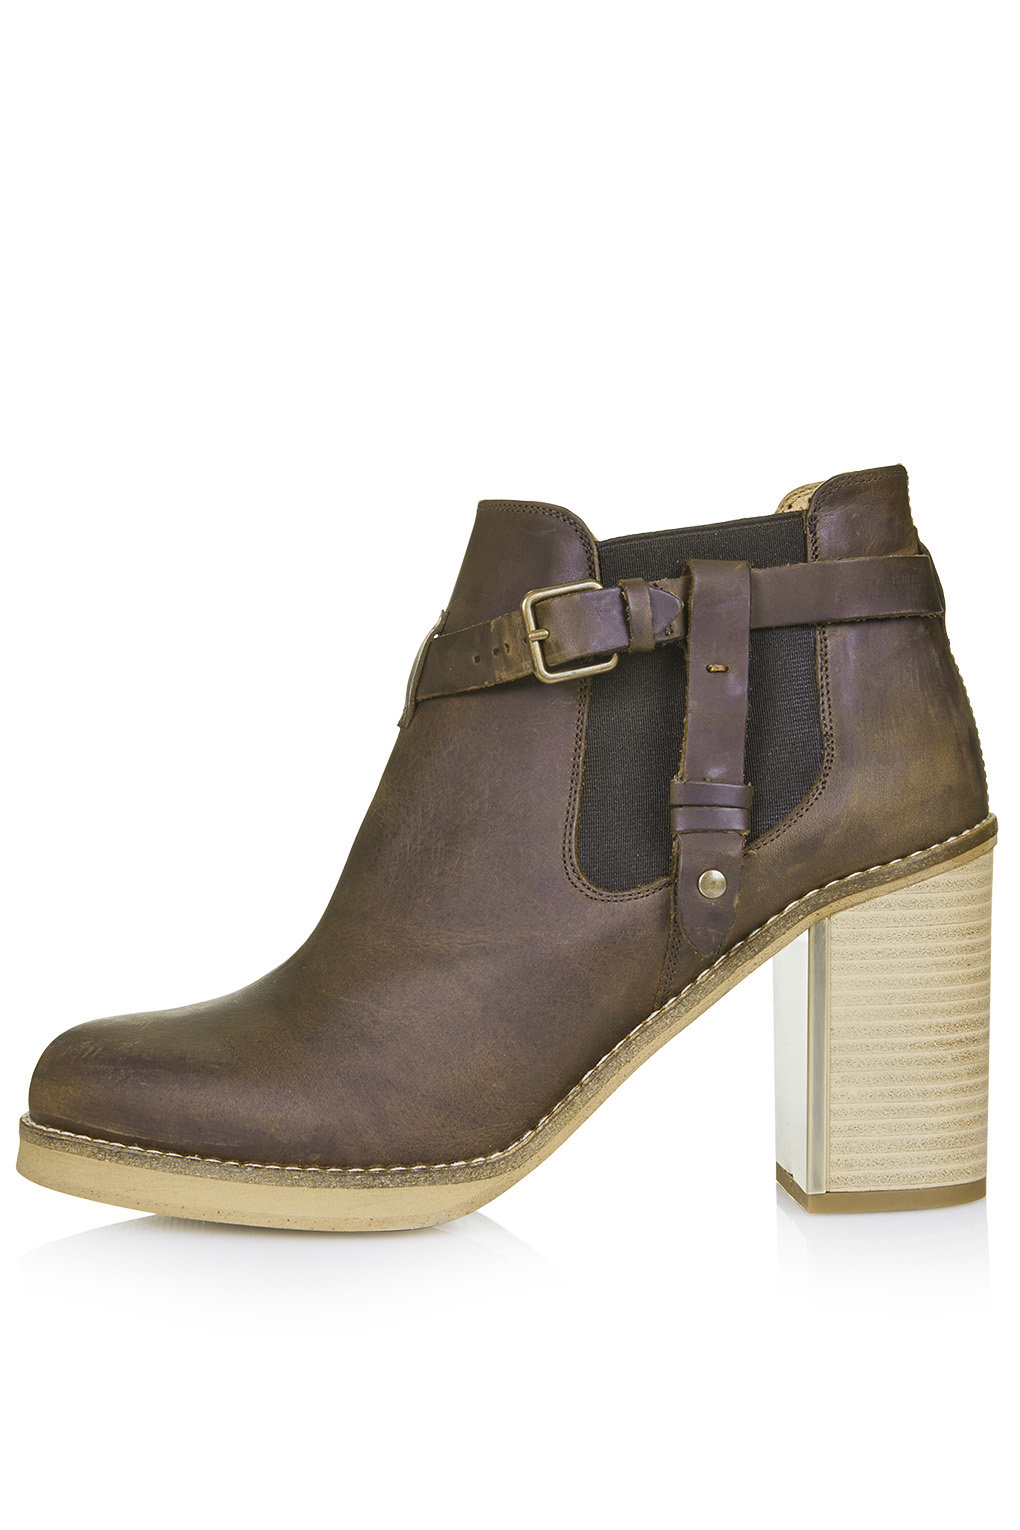 topshop brown leather ankle boots 25 pairs of shoes to